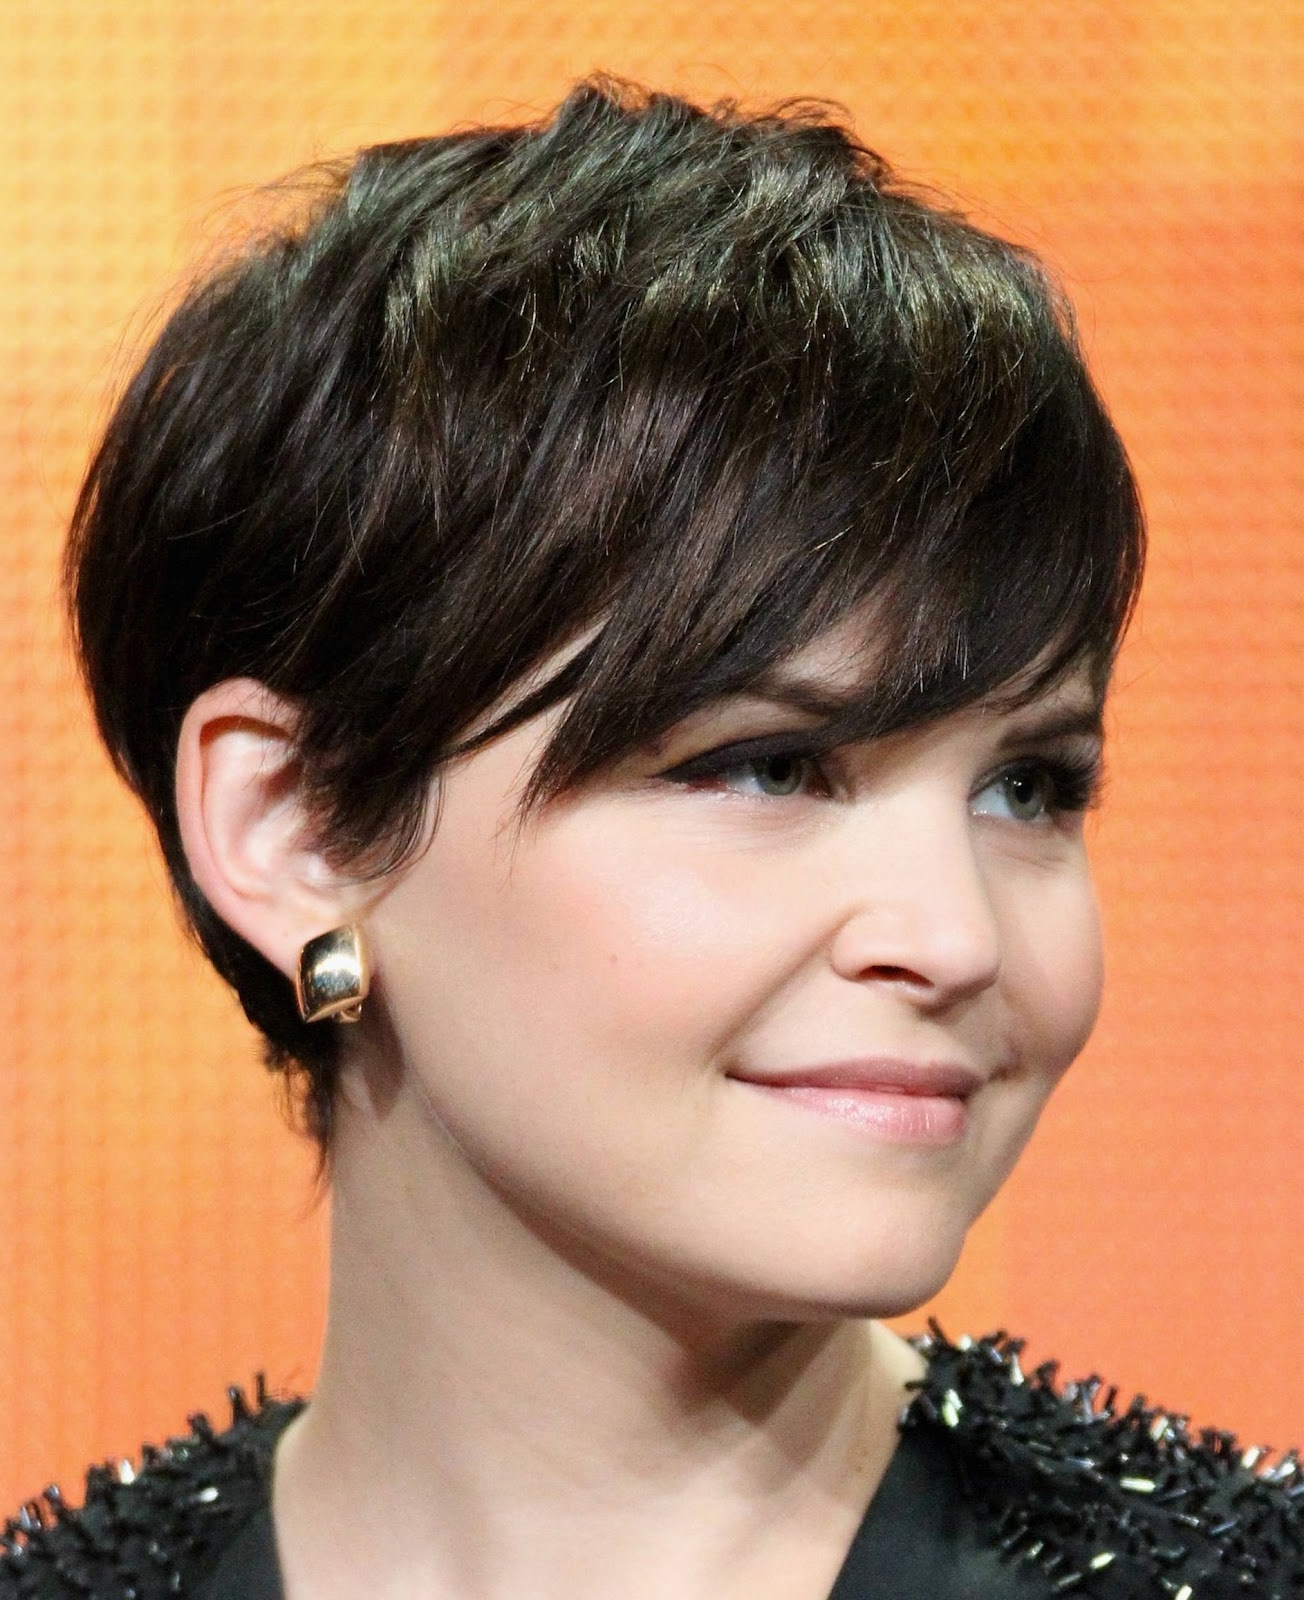 20 Stunning Looks With Pixie Cut For Round Face | Pixie Cut In Recent Pixie Hairstyles For Round Face Shape (View 9 of 15)